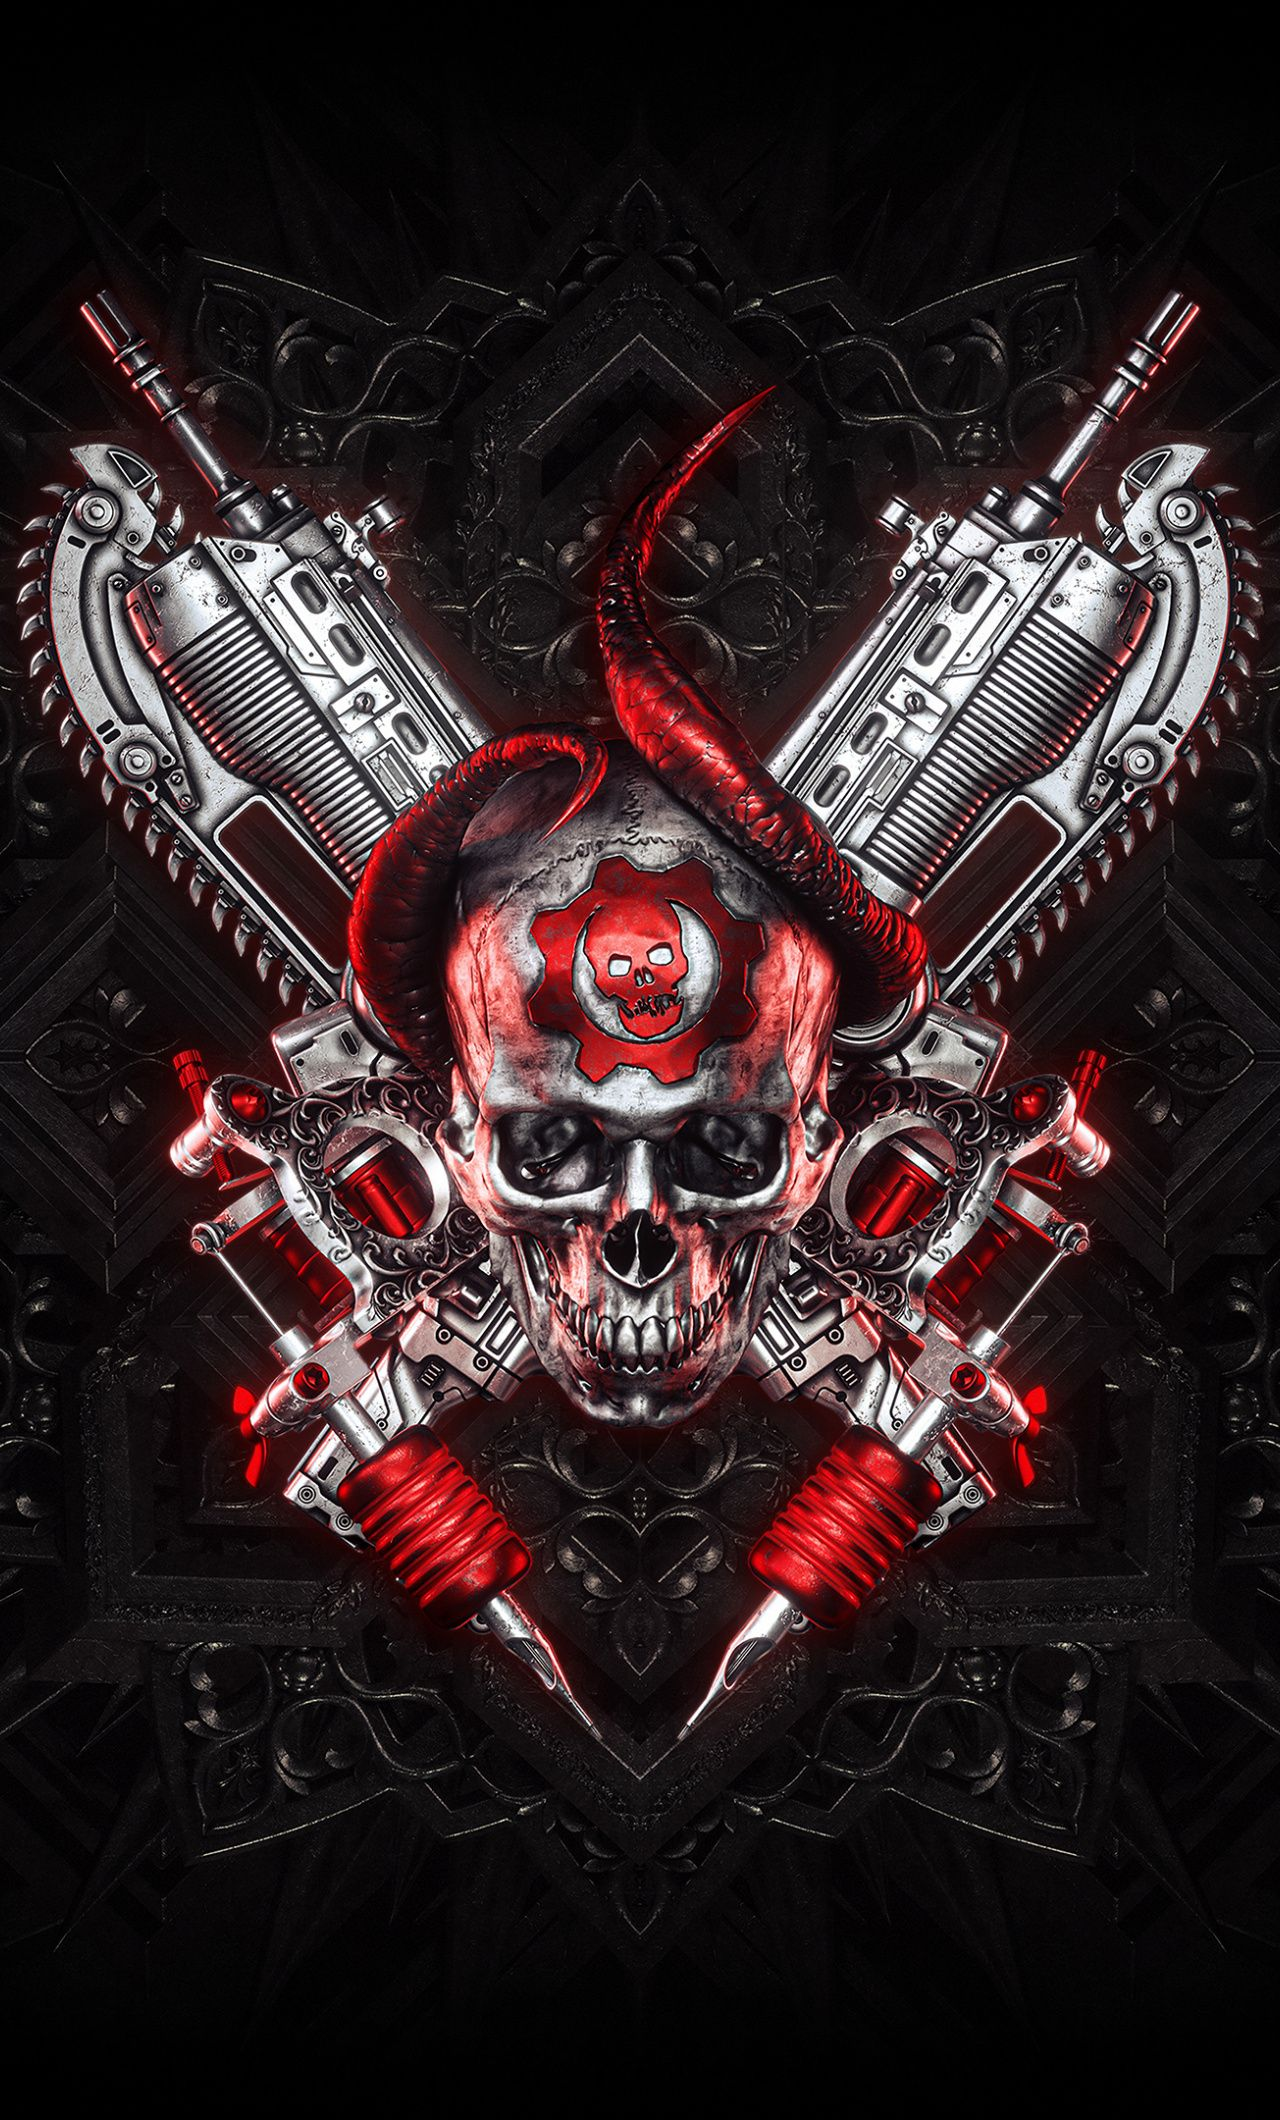 1280x2120 Gears Of War Pc Games Logo Skull And Guns Wallpaper Gears Of War Guns Wallpaper Gears Of War 3